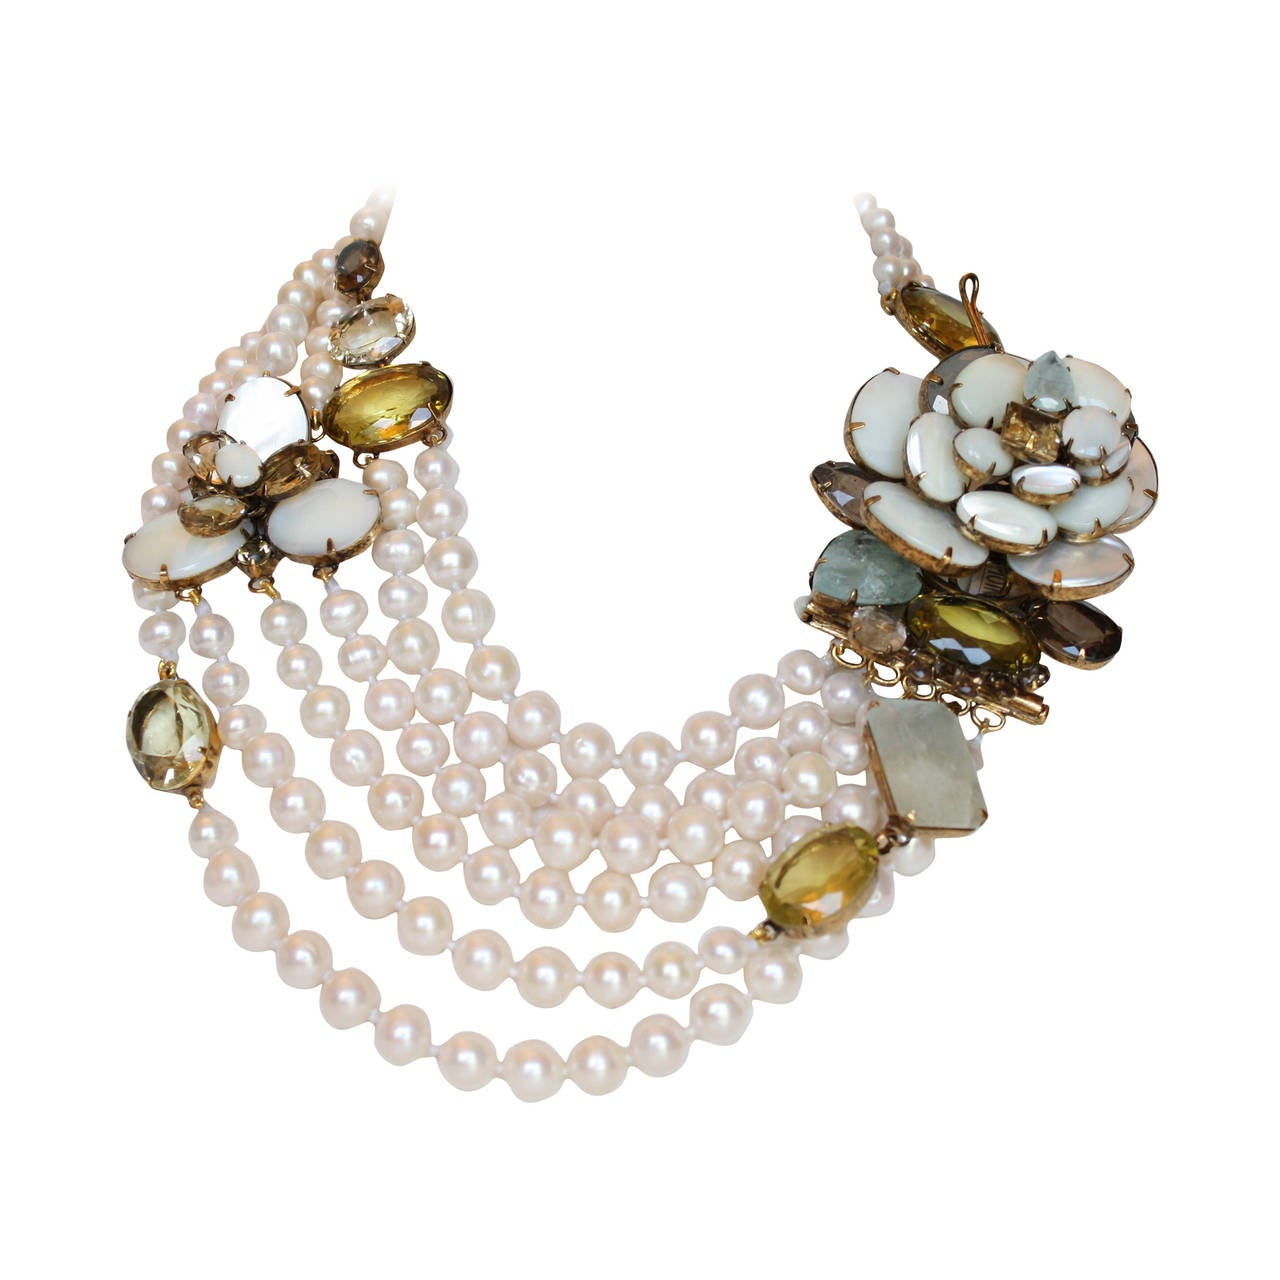 Iradj Moini Fresh Water Pearl, Aquamarine, and Citrine Necklace For Sale